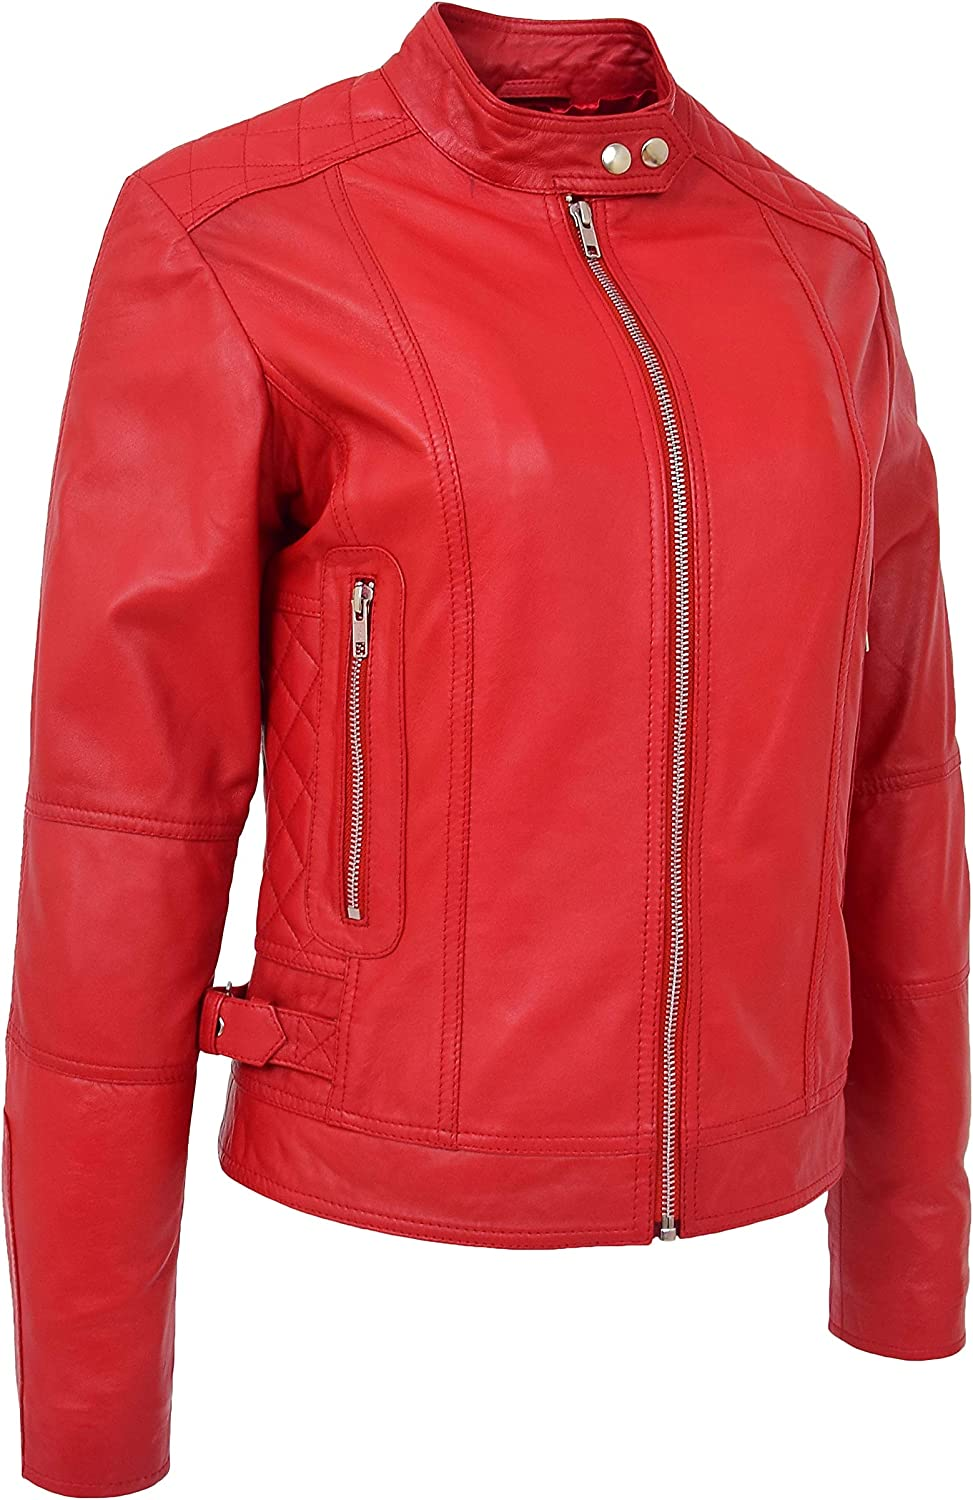 Womens Soft Red Leather Biker Jacket Zip Up Designer Stylish Fitted Quilted Celeste